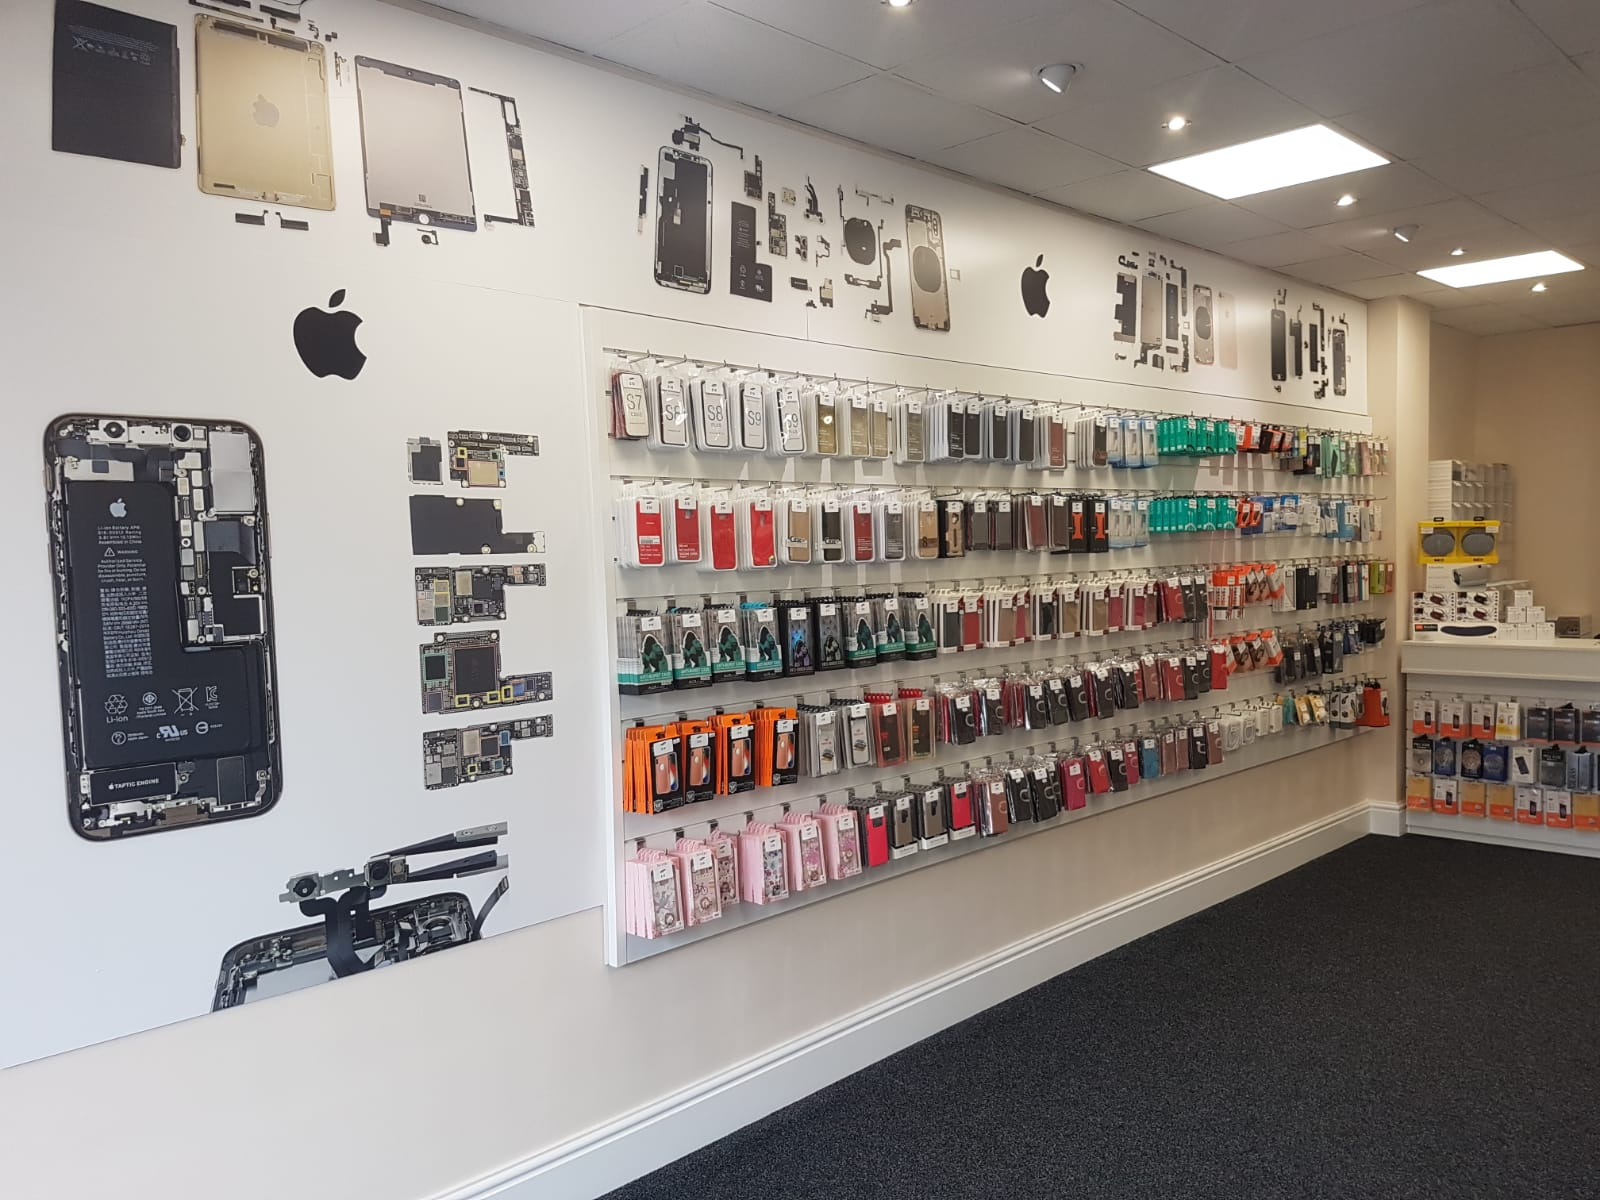 Mobile Lab device repair shop opens in West Bridgford • West